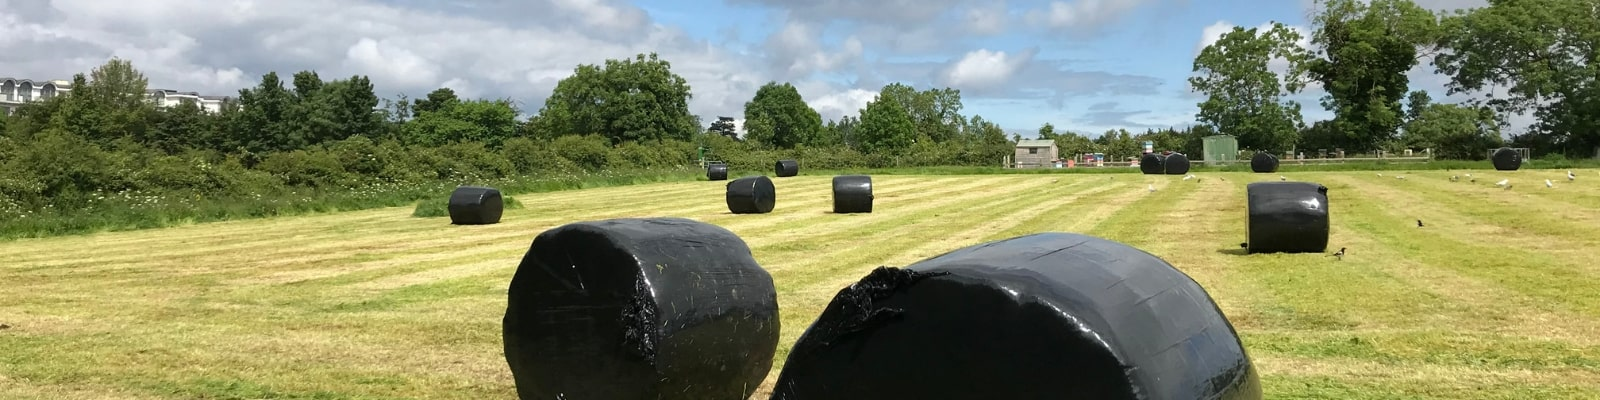 https://www.airfield.ie/wp-content/uploads/2019/07/Silage-making-at-Airfield-Estate-min.jpg